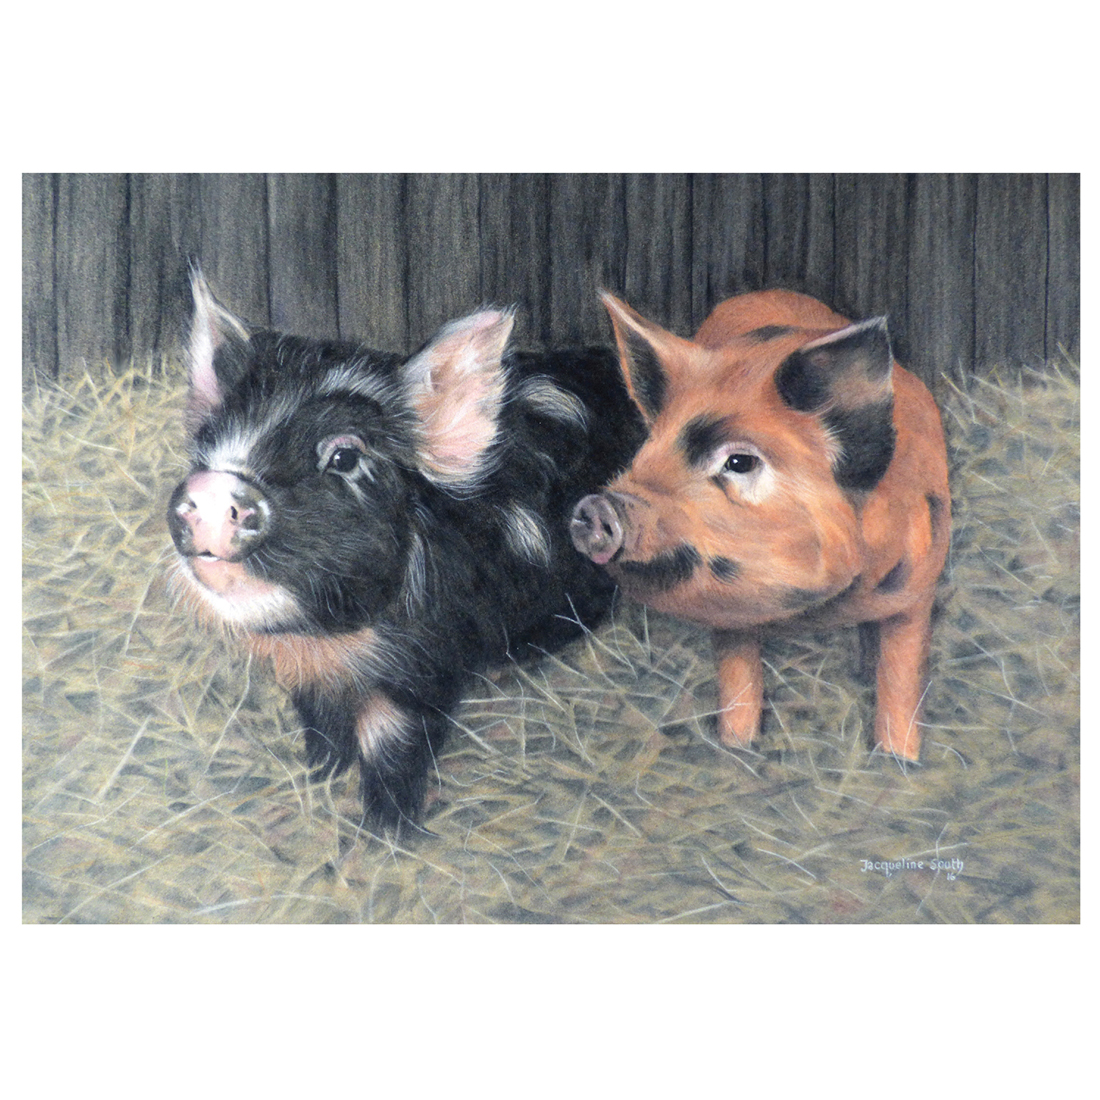 Two pigs in straw